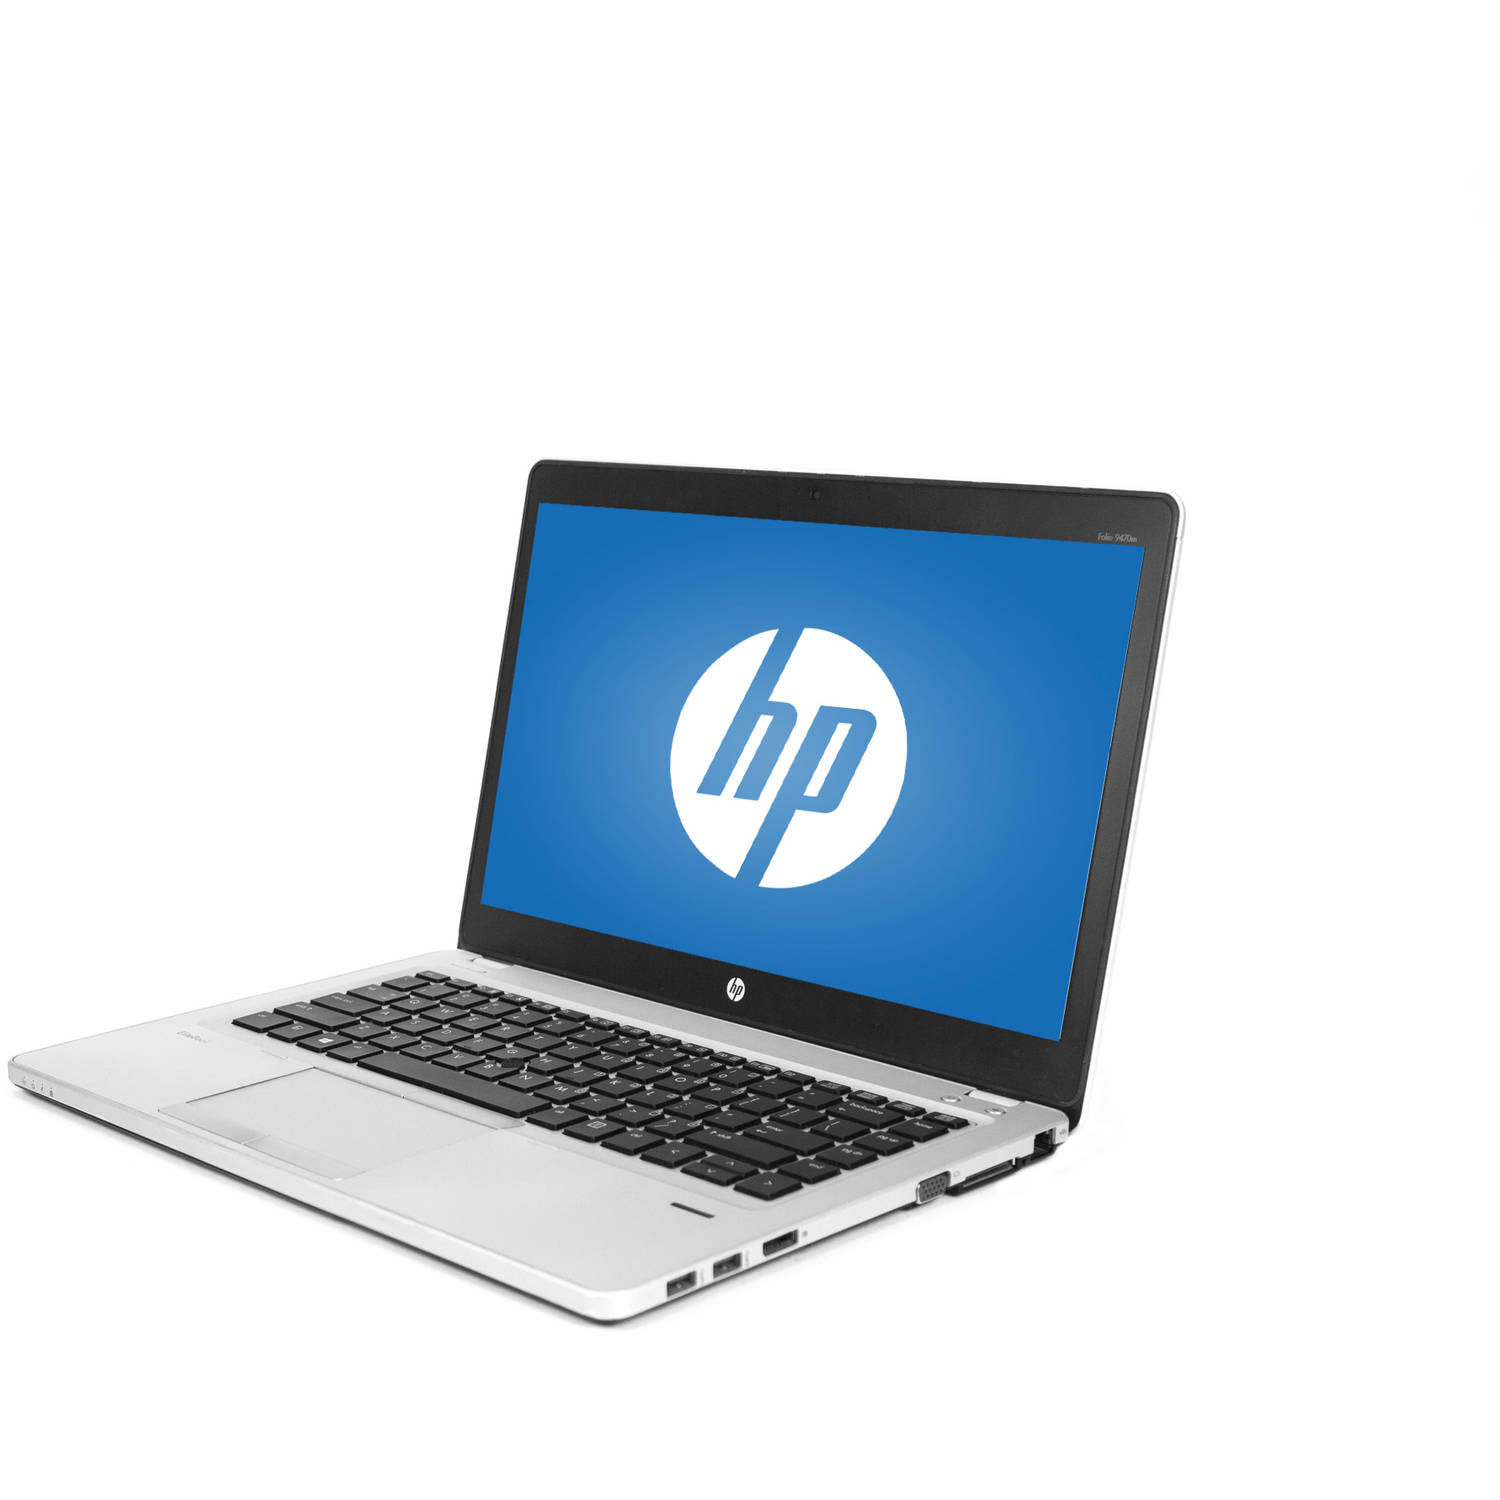 "Refurbished HP Ultrabook 14"" EliteBook Folio 9470M WA5-0889 Laptop PC with Intel"